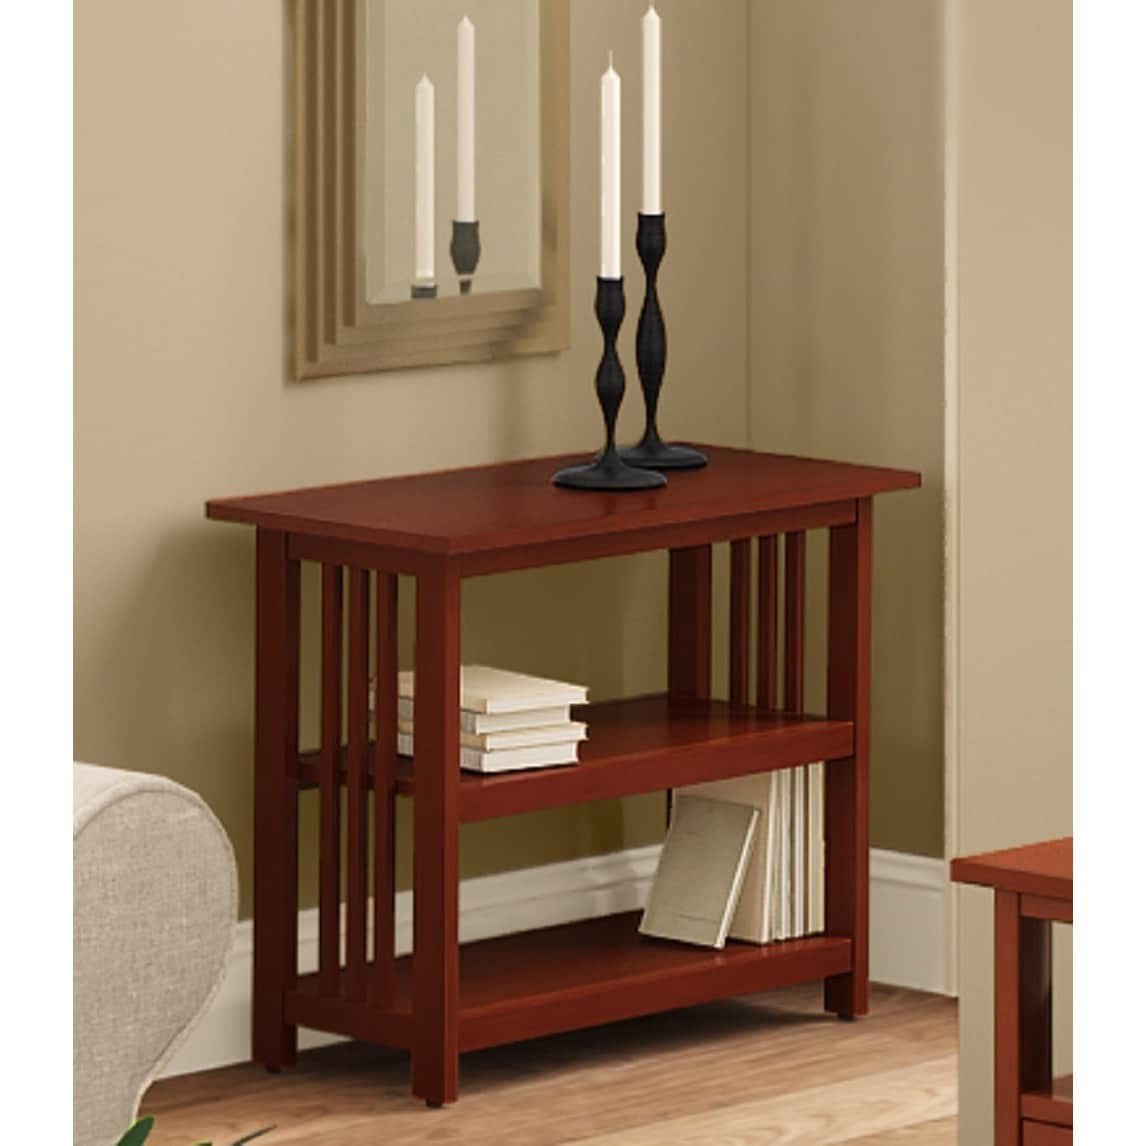 Shop Copper Grove Boutwell Classic Mission Style Under Window Bookshelf